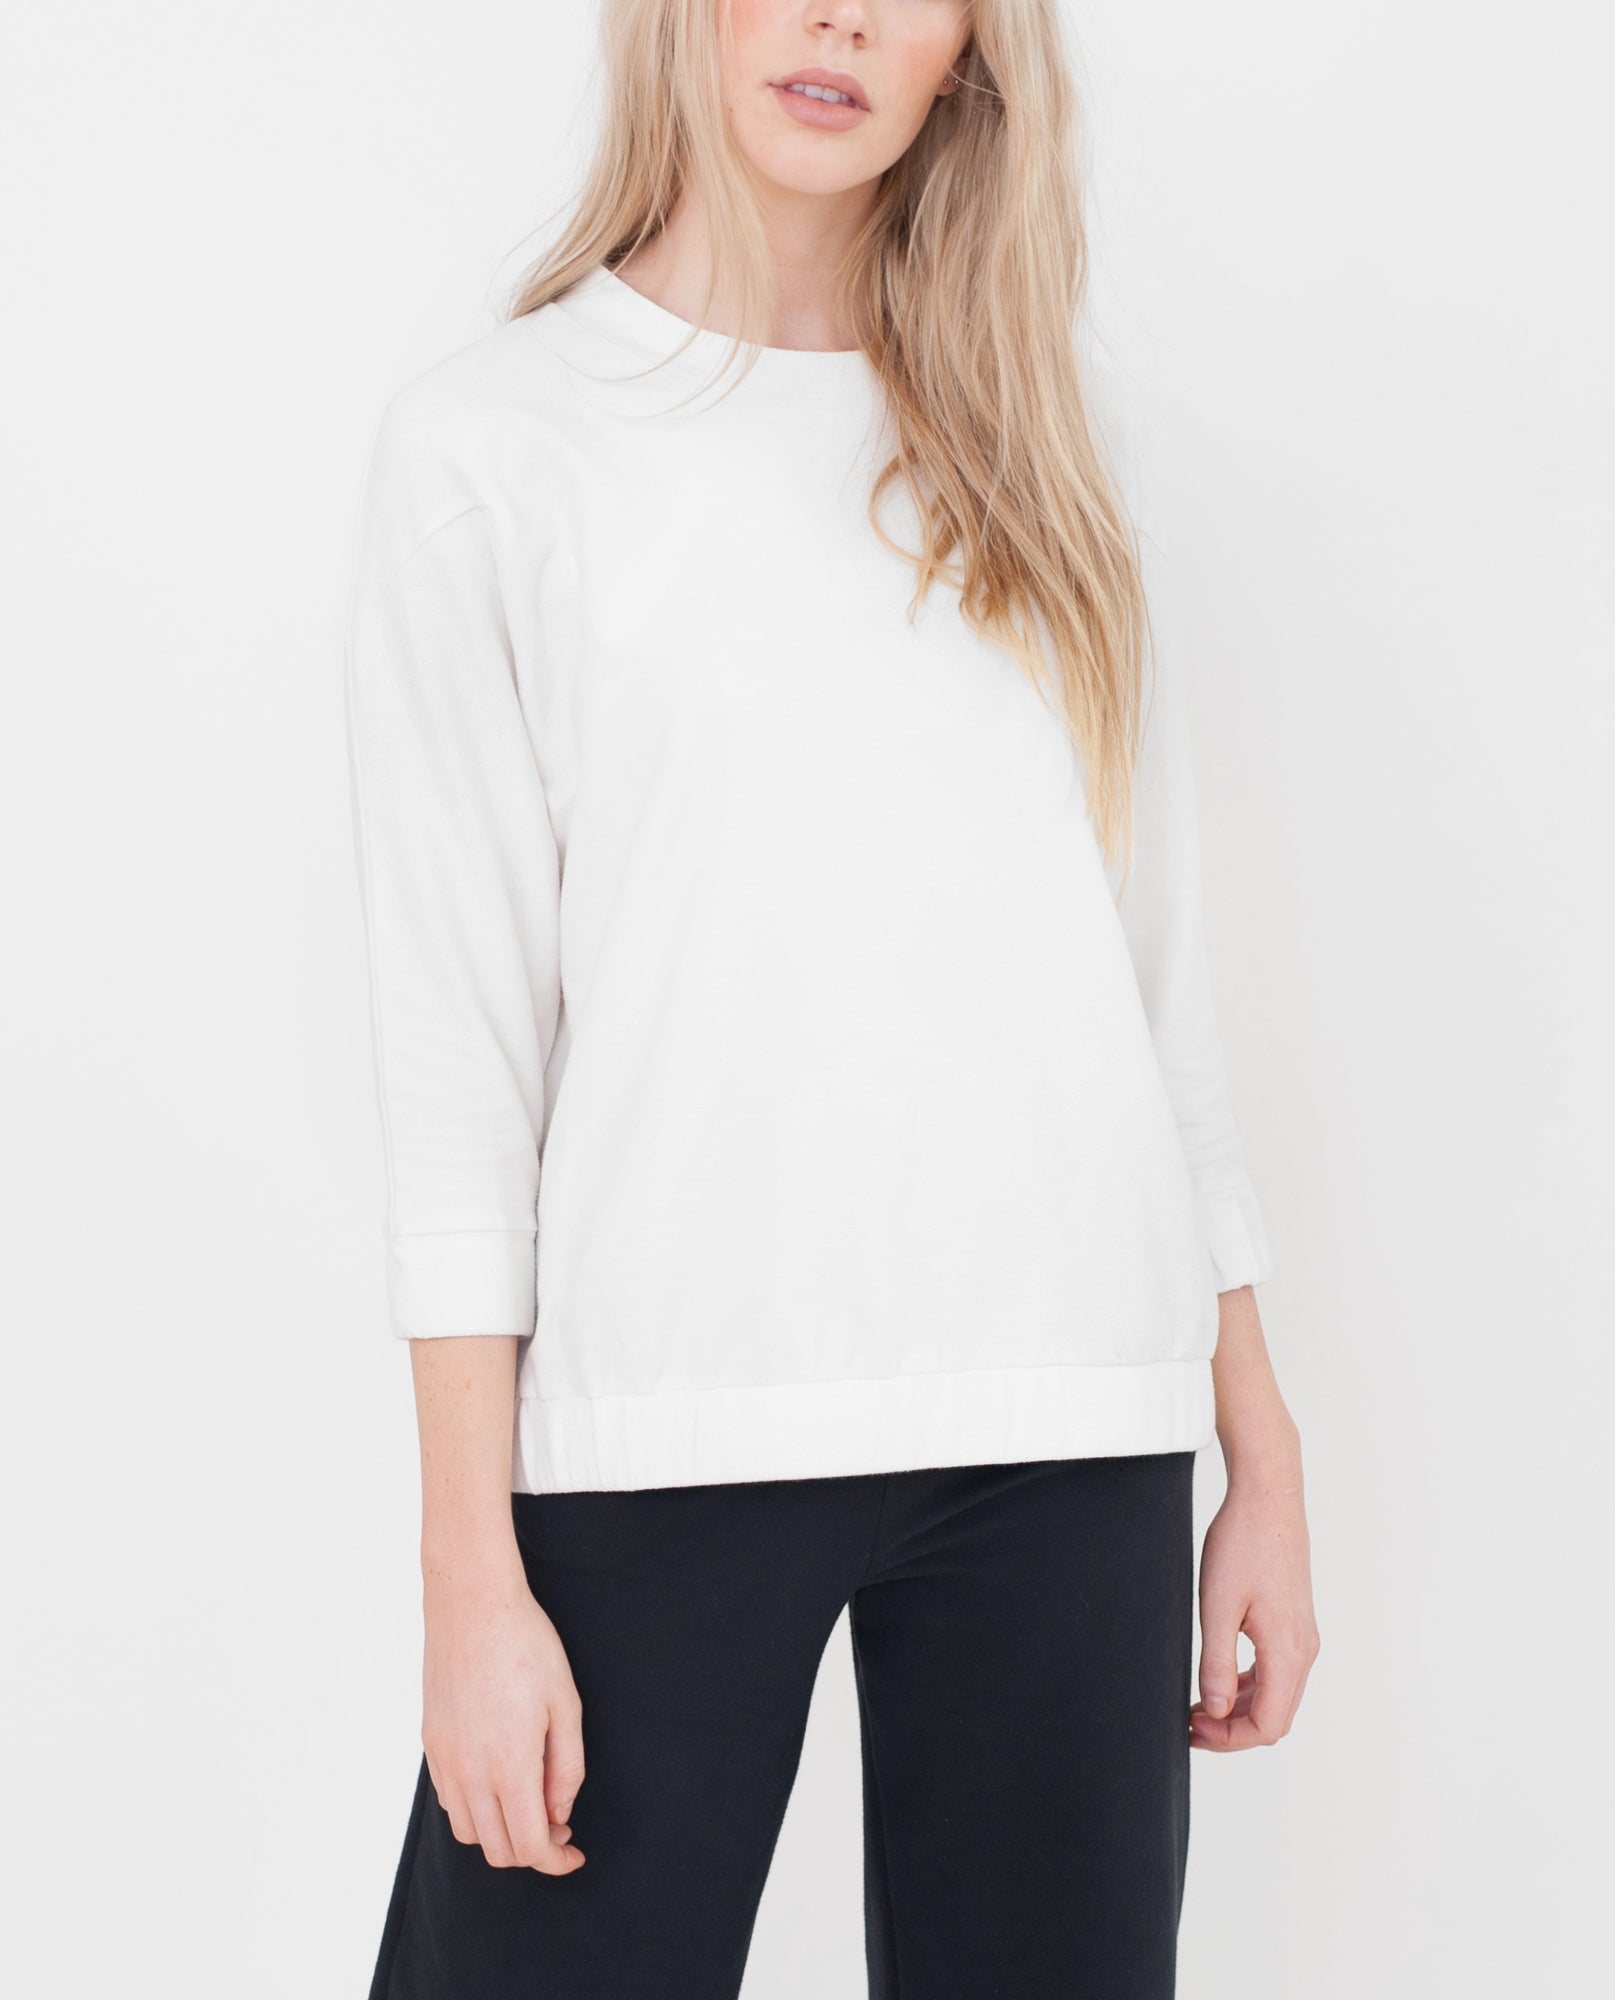 KYLA Organic Cotton Sweatshirt from Beaumont Organic